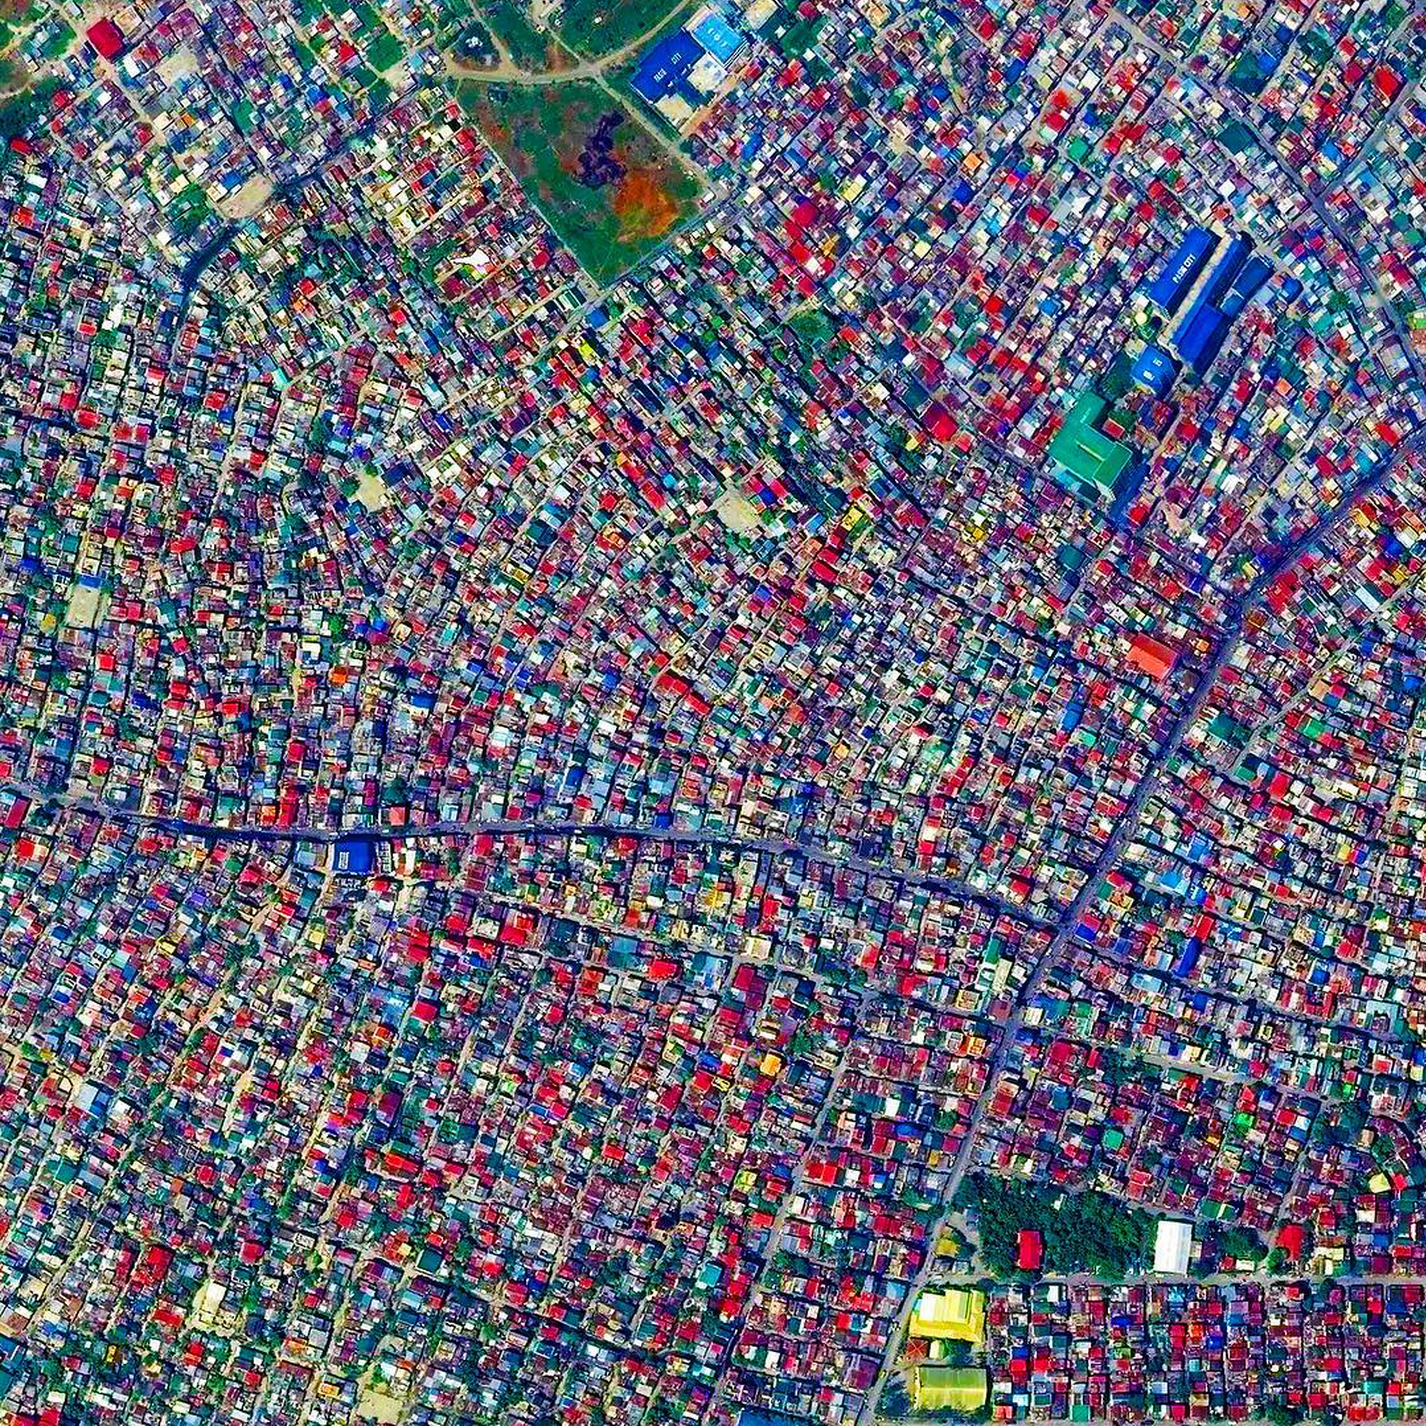 9/17/2015   Pasig   Manila, Philippines  14.541245999°, 121.104281301°    The City of Pasig is one of the highly urbanized areas in Manila, Philippines. Formerly a rural settlement, the city now contains mostly residential and industrial buildings and has been becoming increasingly commercial in recent years. The colorful roofs that dot the landscape are common in the Manila region.